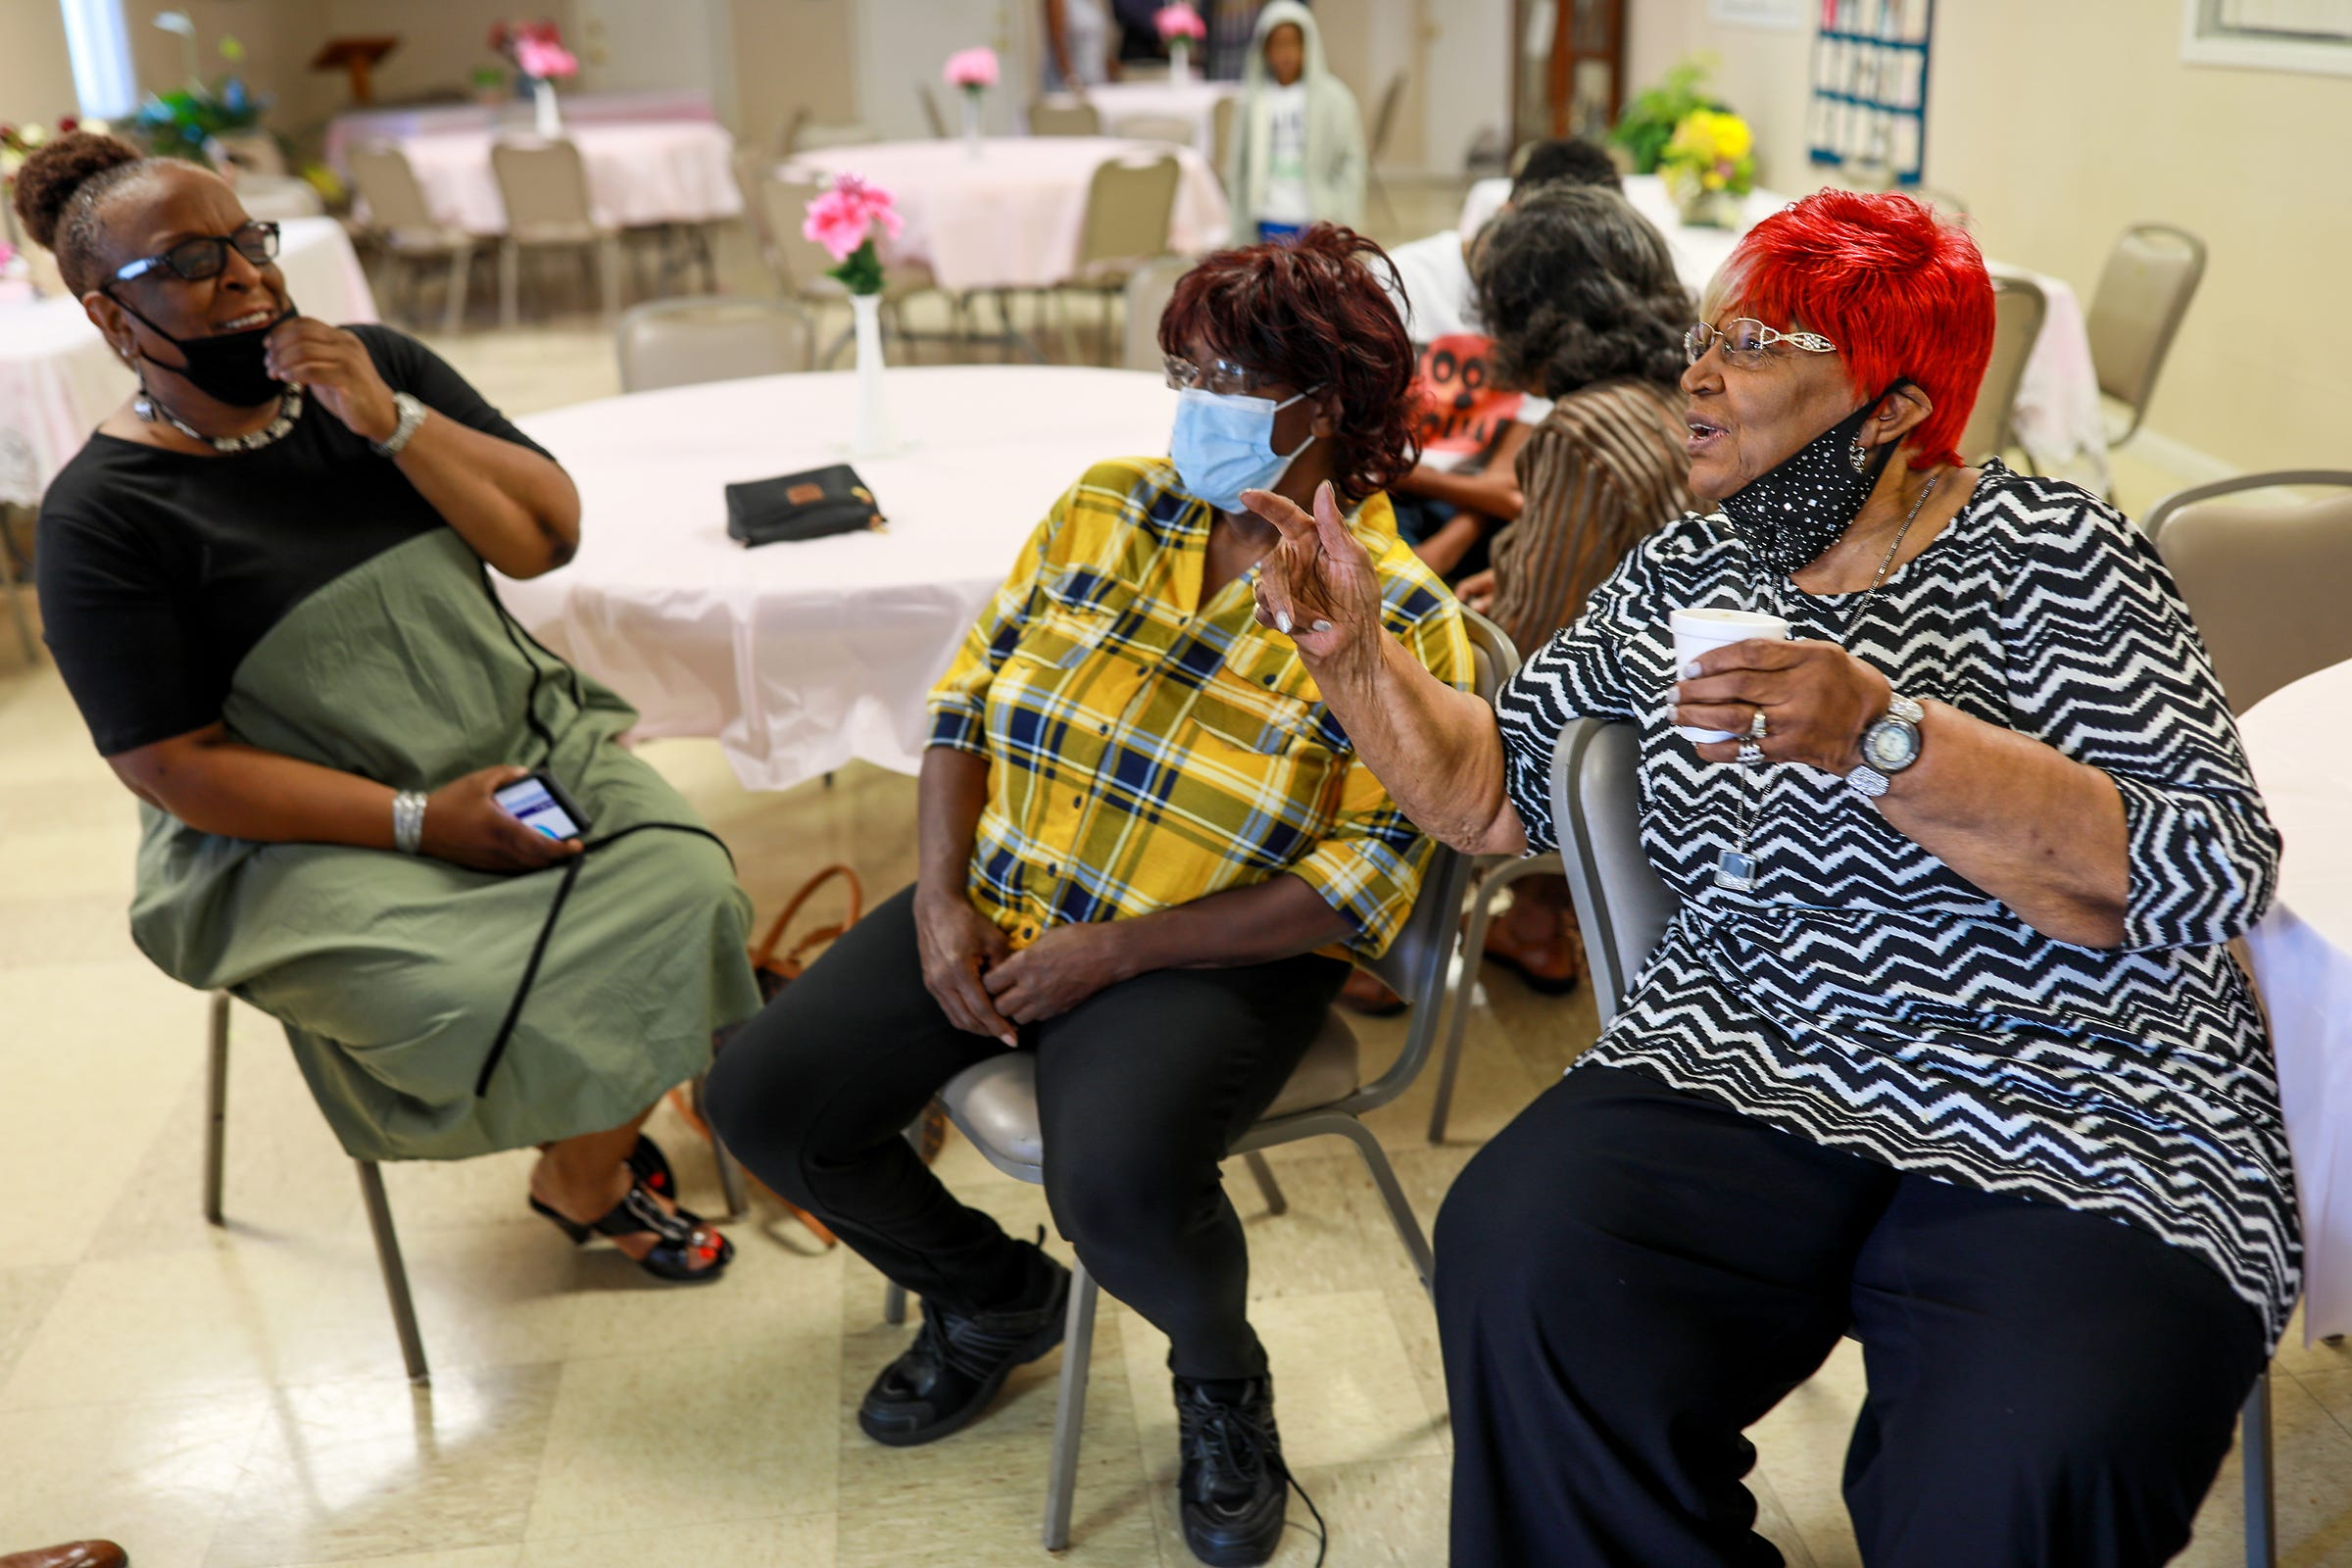 Bessie Stallworth, 90, of Detroit, right, talks with Deloris Miller, 70, of Southfield and her daughter Gwendolyn Stallworth, 60, of Southfield, left, during the Veterans breakfast held at the Northend Church of God and Christ on Saturday, Sept. 11, 2021. Bessie Stallworth has been a member of the church since she moved to Detroit in 1950, during the second wave of the Great Migration from the south, and has been committed to the church as much as she has been to Detroit and the family she raised in Detroit.